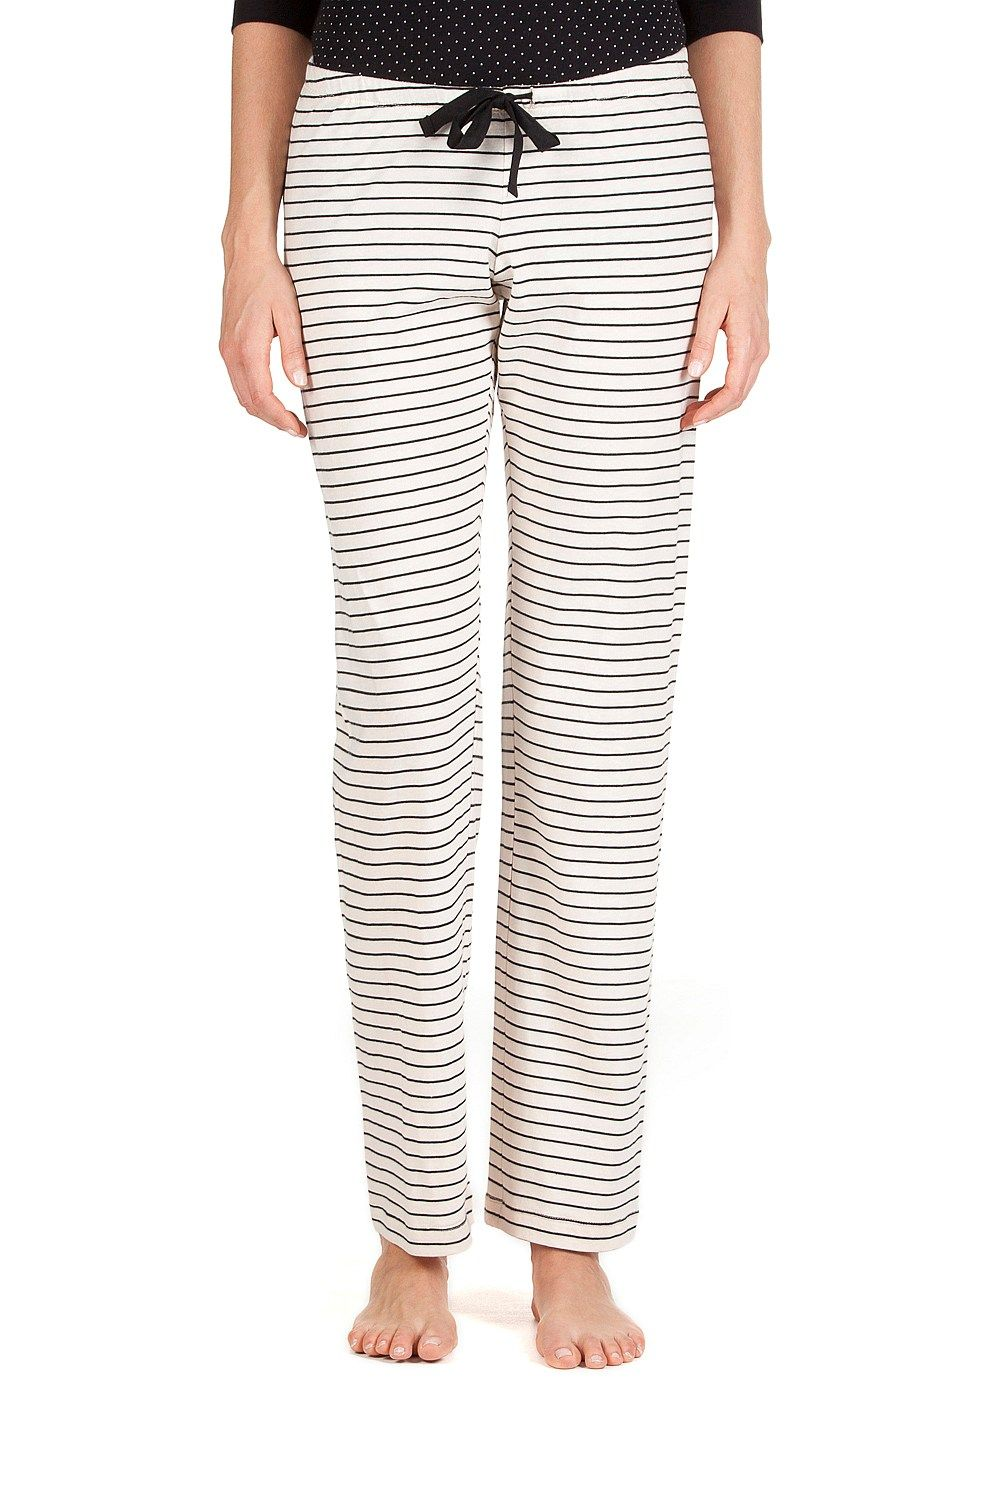 ce4e7c1f10d4 Striped Pj Pant in Marshmallow from Country Road